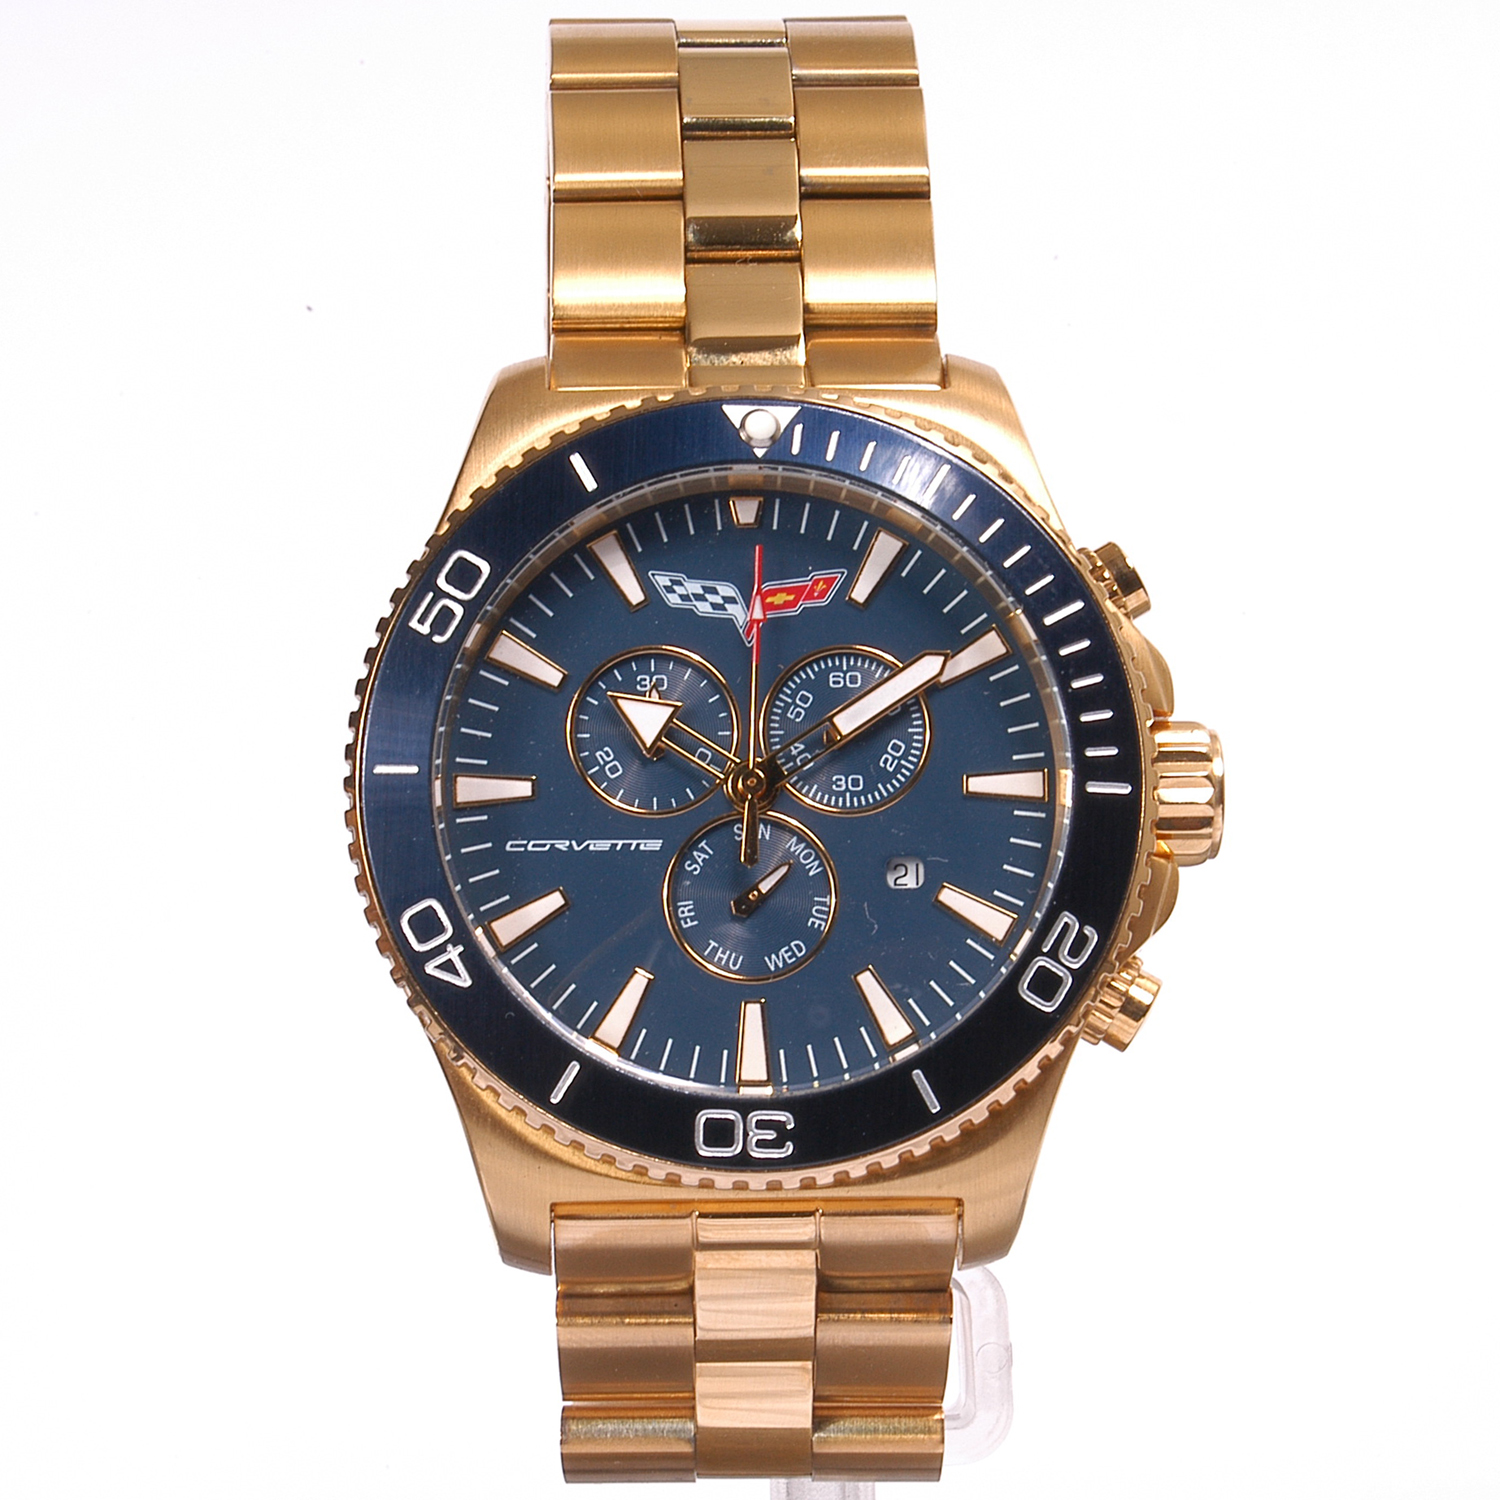 AKCR215-G Corvette 215 Swiss Chrono Collection Blue Dial Gold Tone